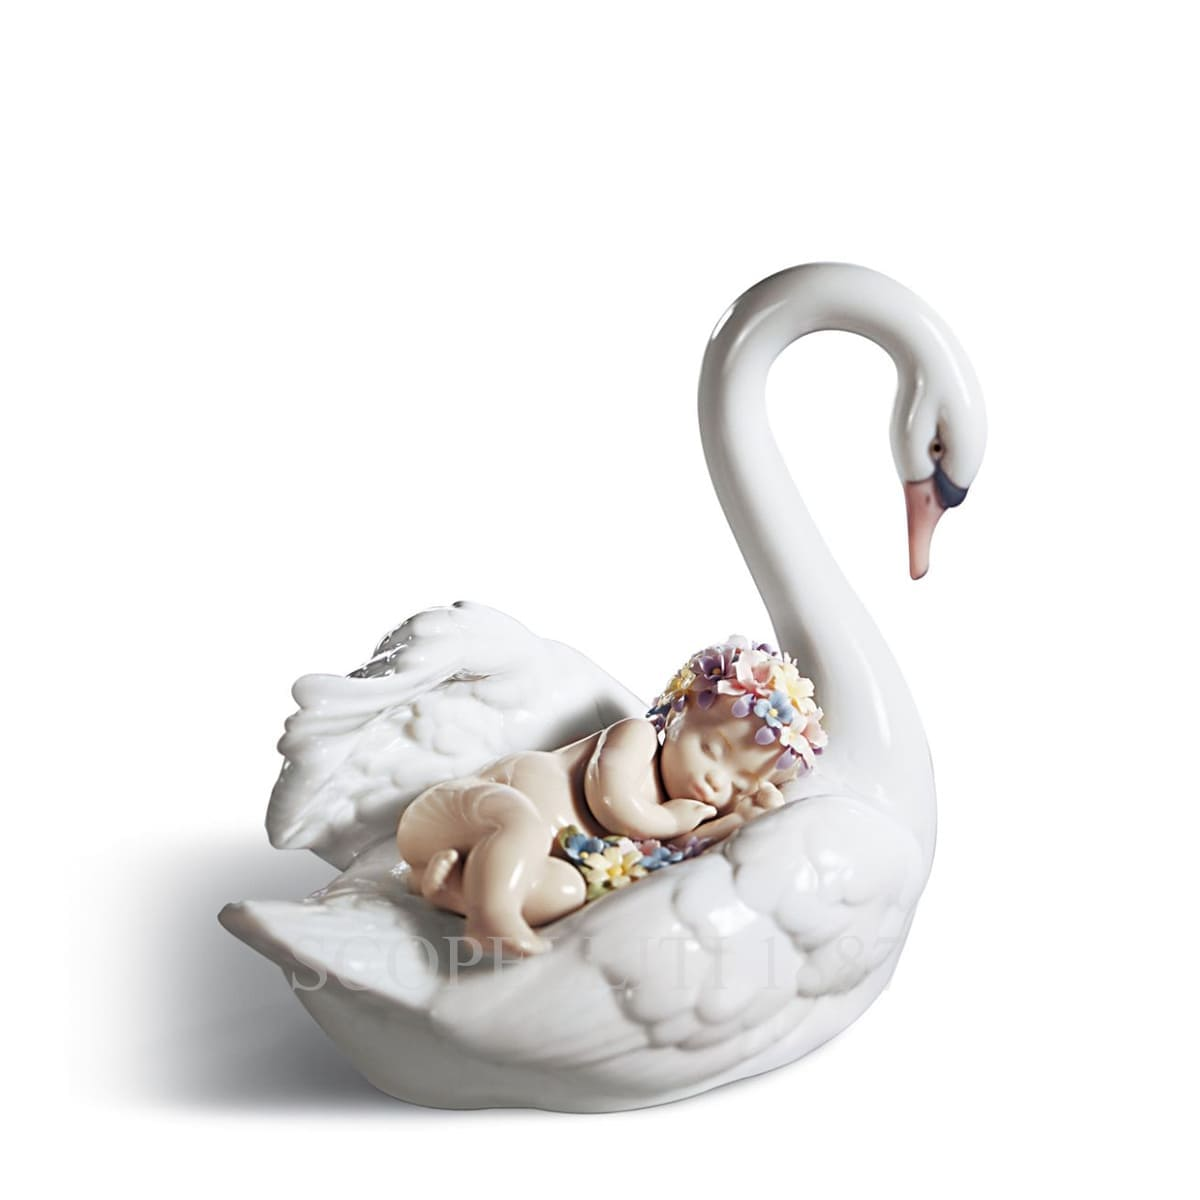 Lladró Drifting Through Dreamland Porcelain Figurine